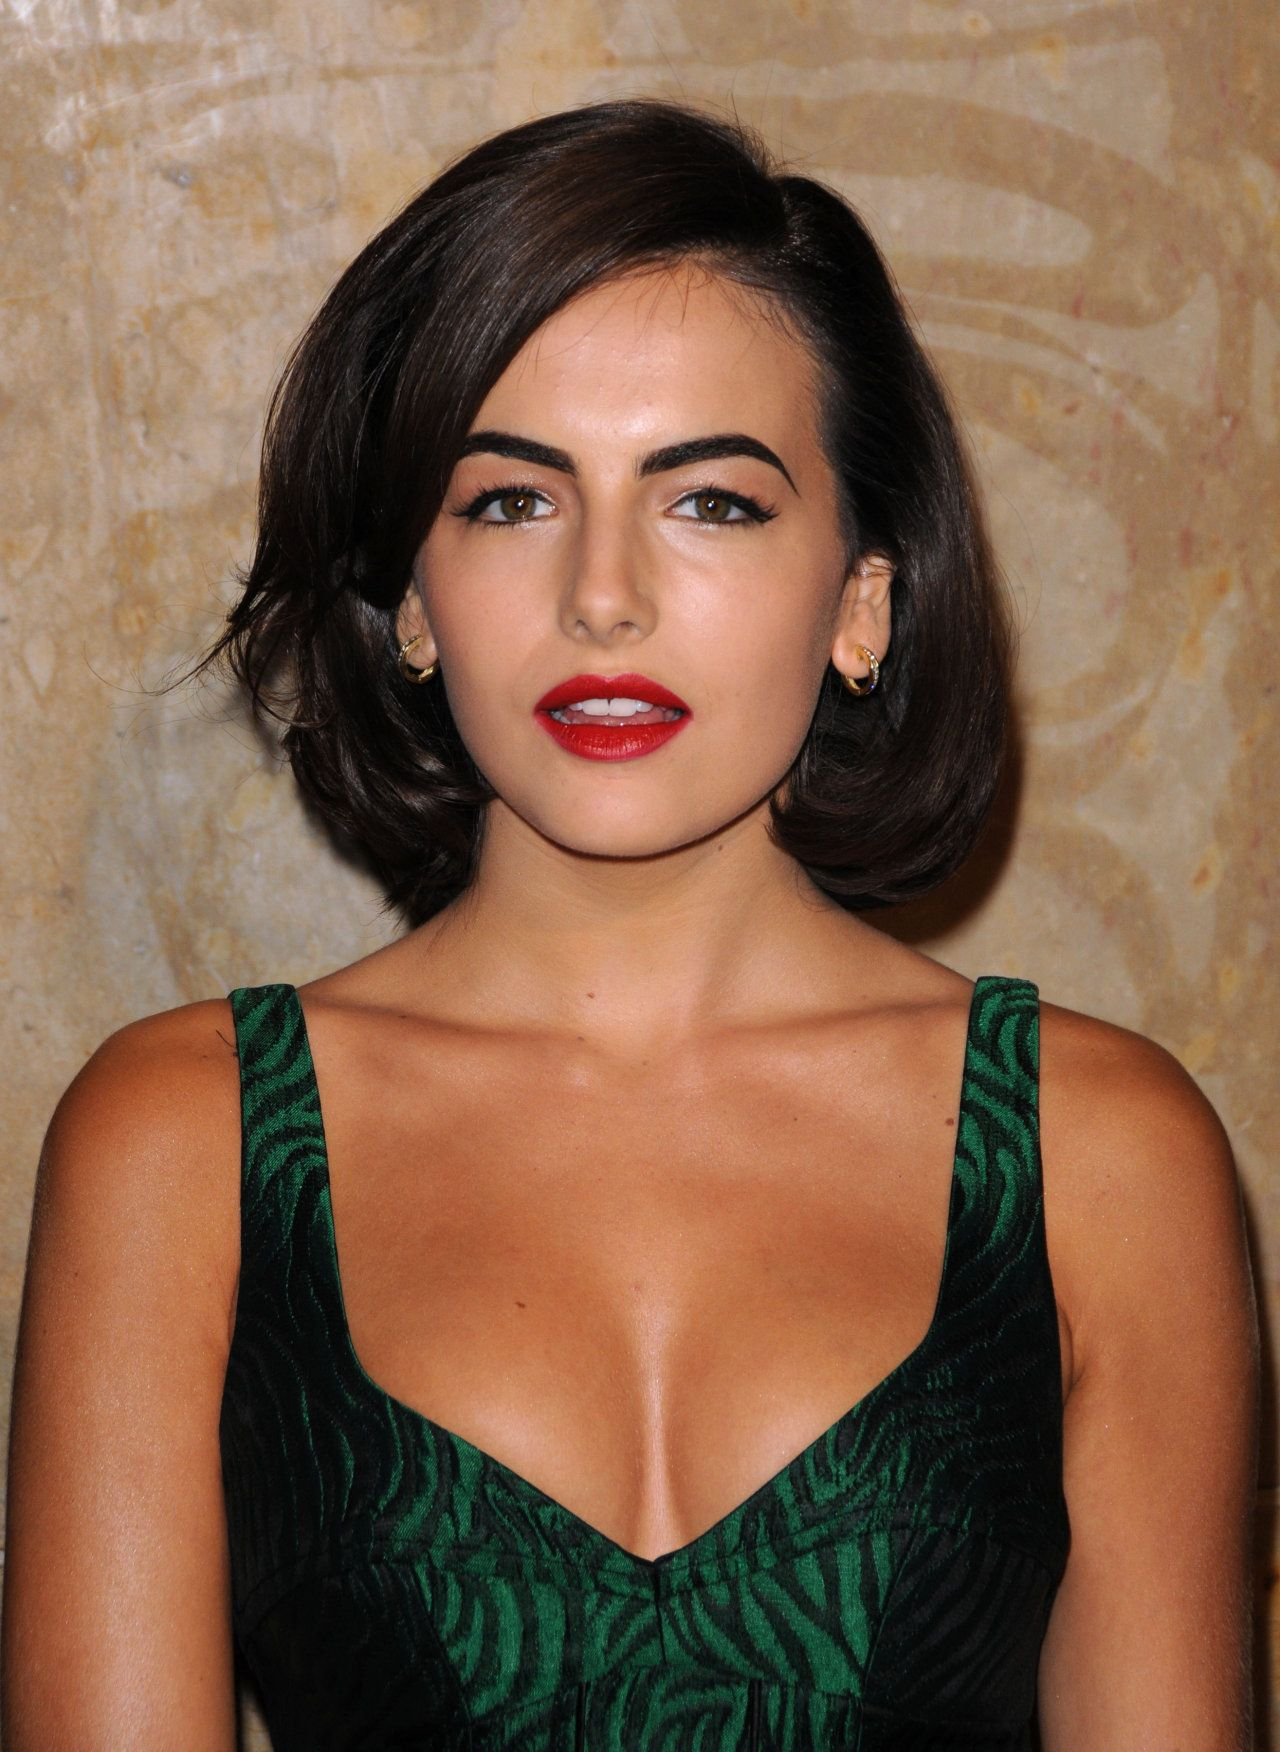 Cleavage Hot Camilla Belle naked photo 2017